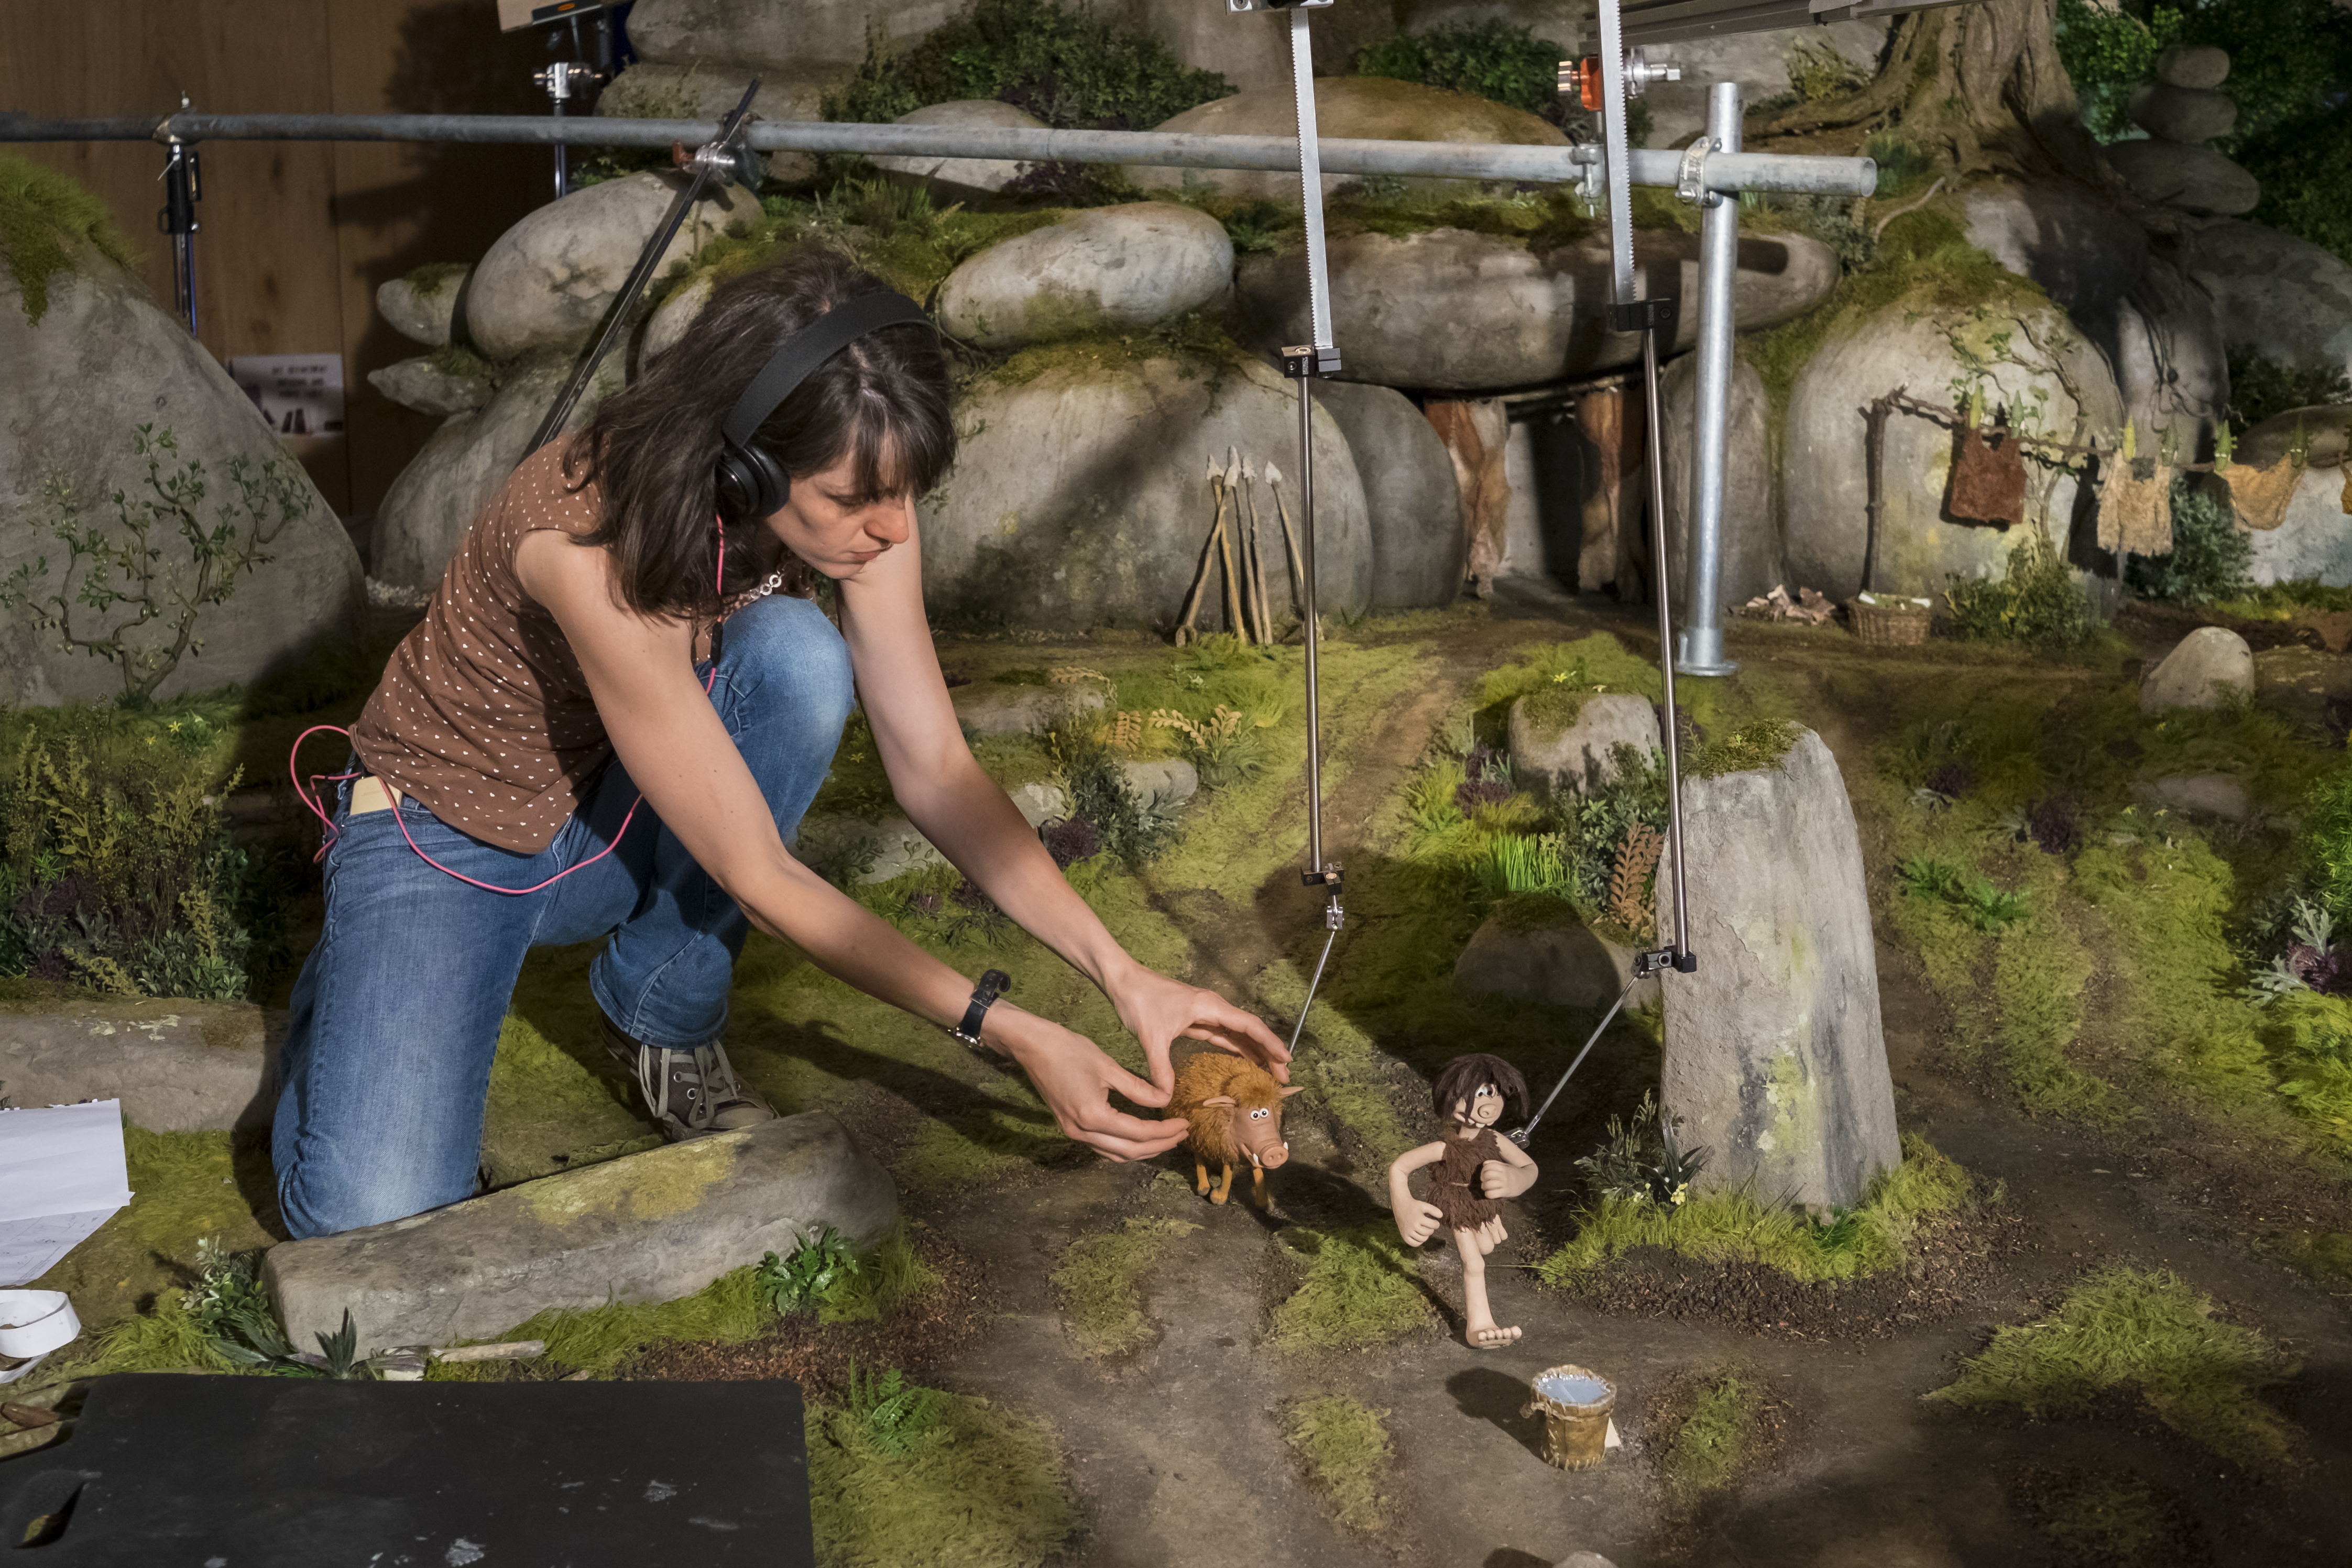 Animator, Claire Rolls with Dug and Hognob on set. The rig being used was removed in post production.